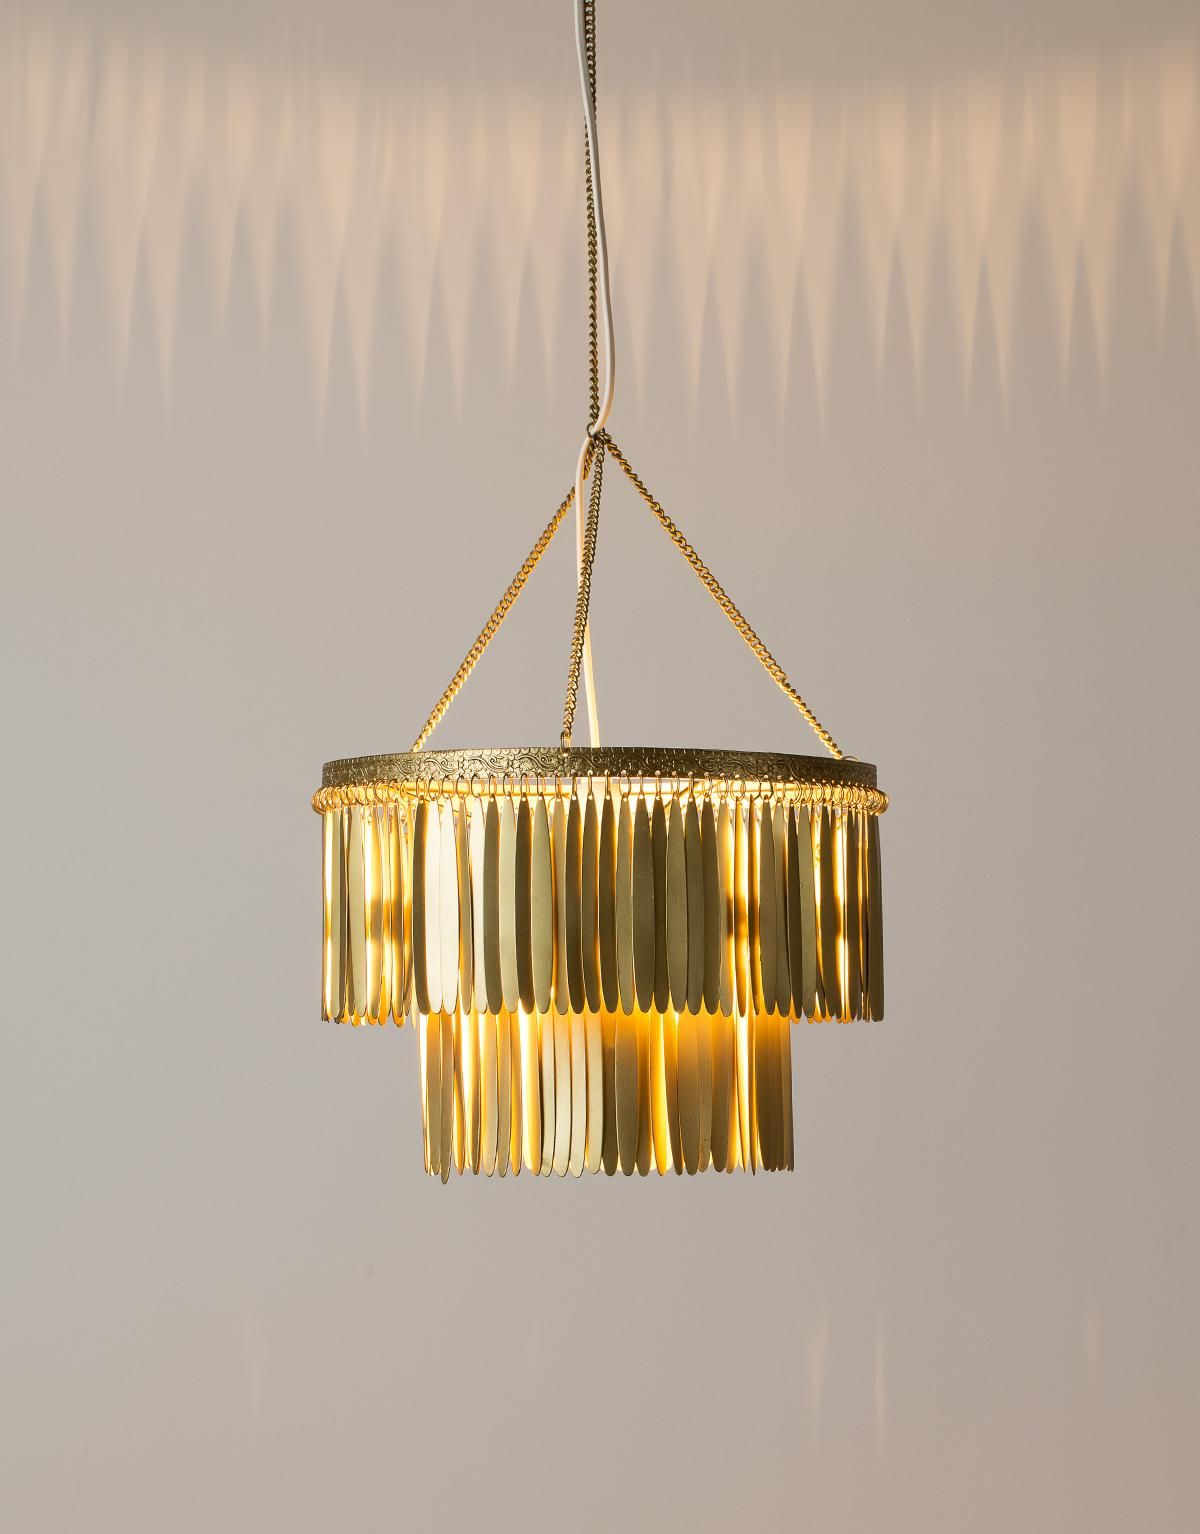 FEATHER taklampe messing | Electric lamps | Lamper | Home | INDISKA Shop Online